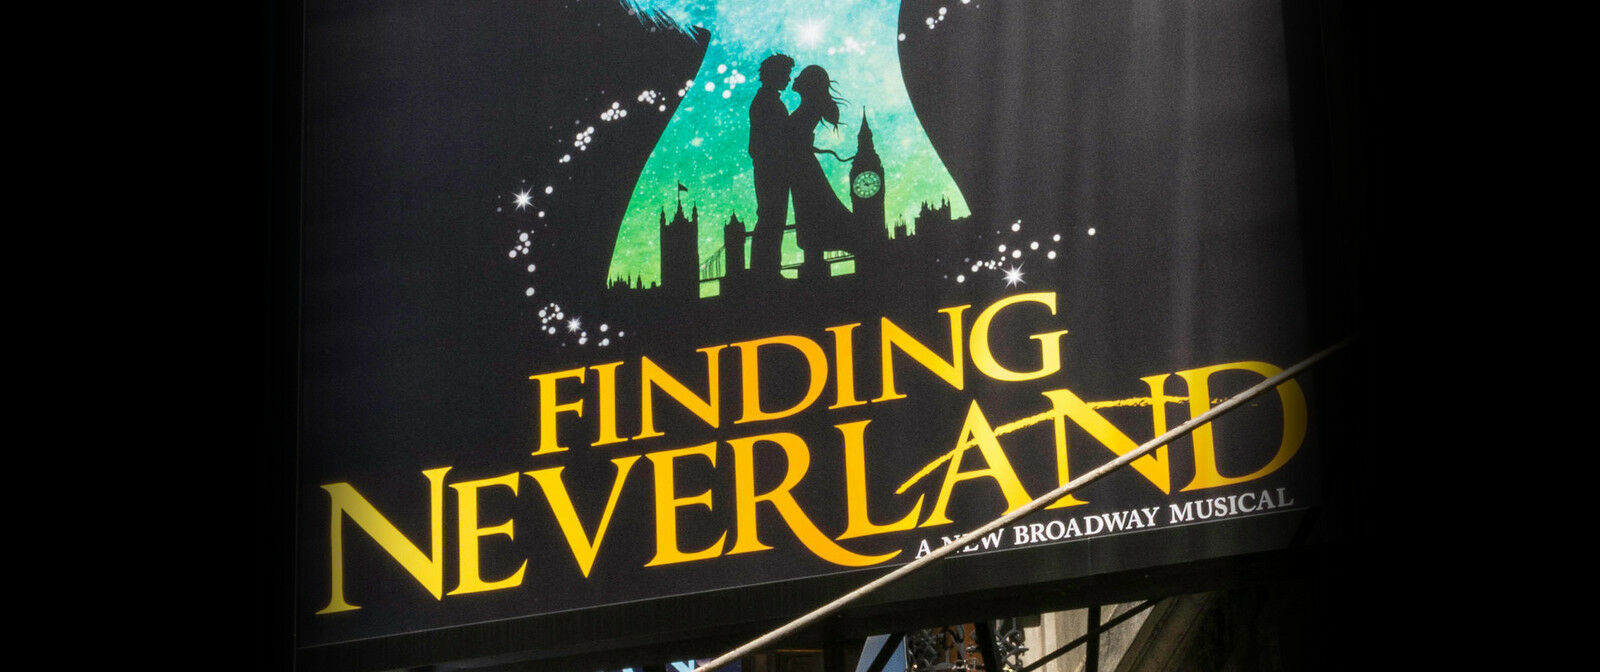 Finding Neverland Hartford